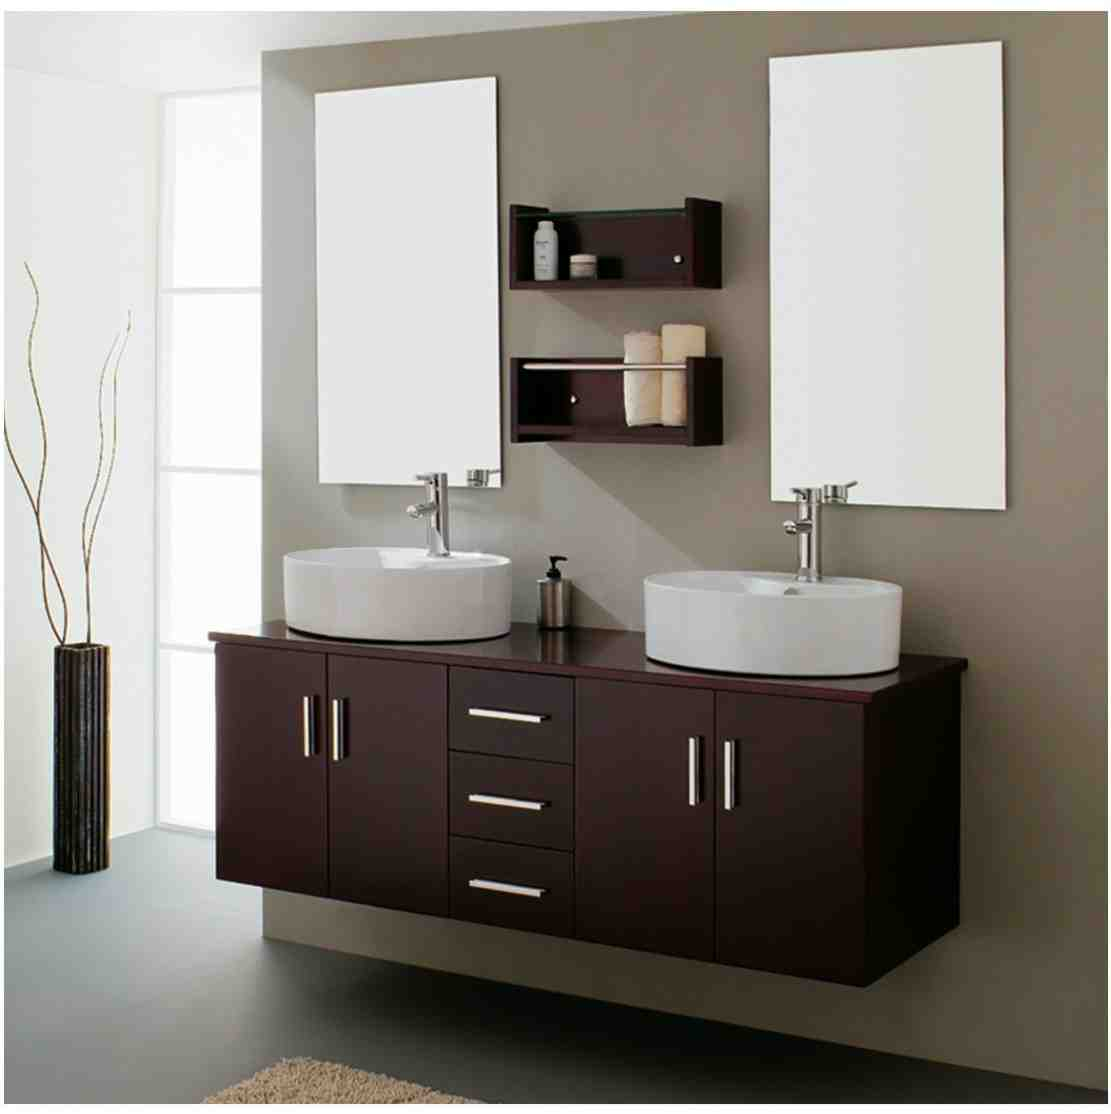 bathroom cabinets the mysteries and the purposes they serve bathroom furniture designs